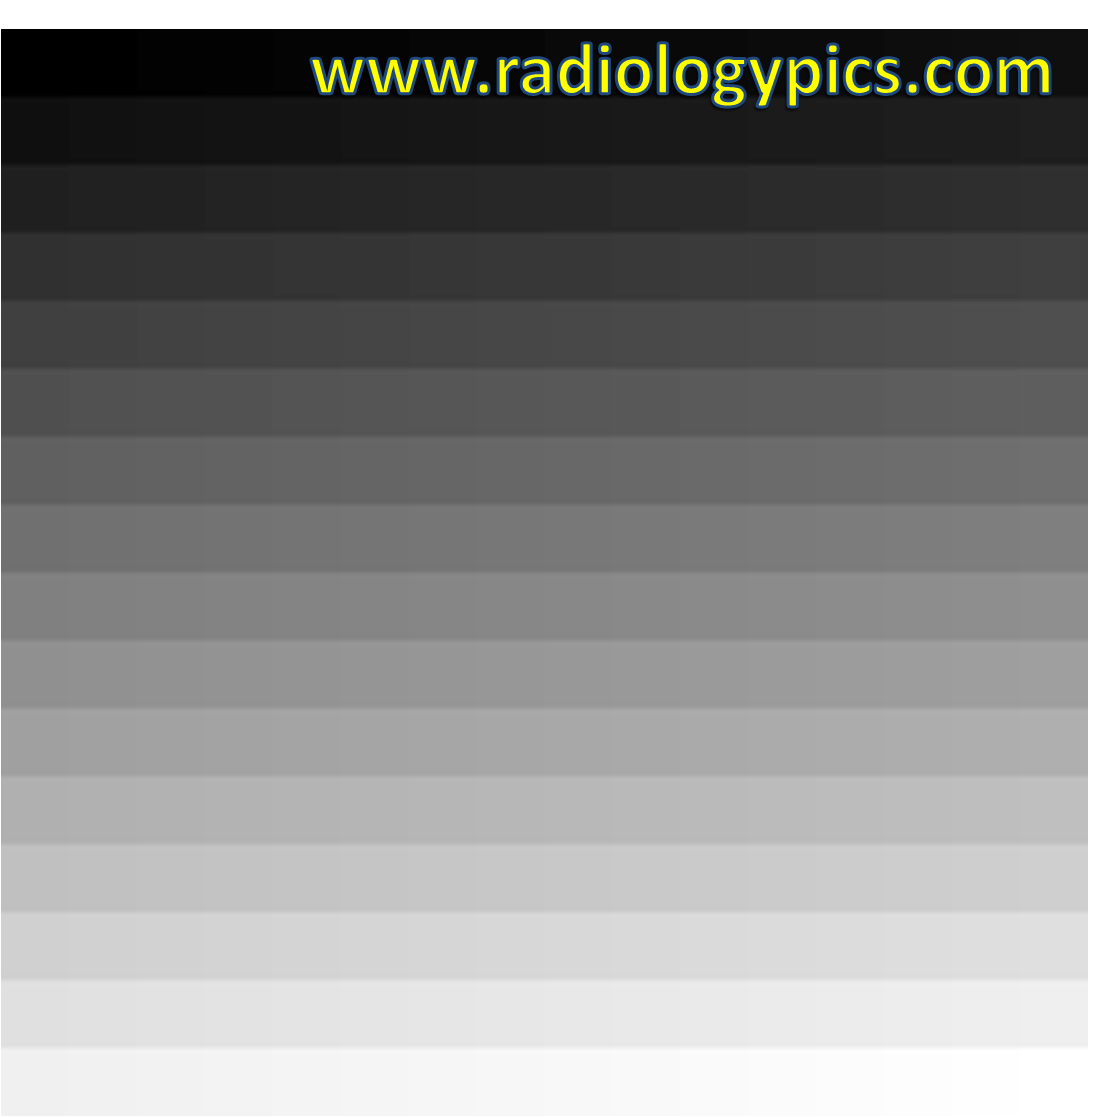 Shads Of Gray 256 Shades Of Gray Explanation Of Grayscale Radiologypics Com